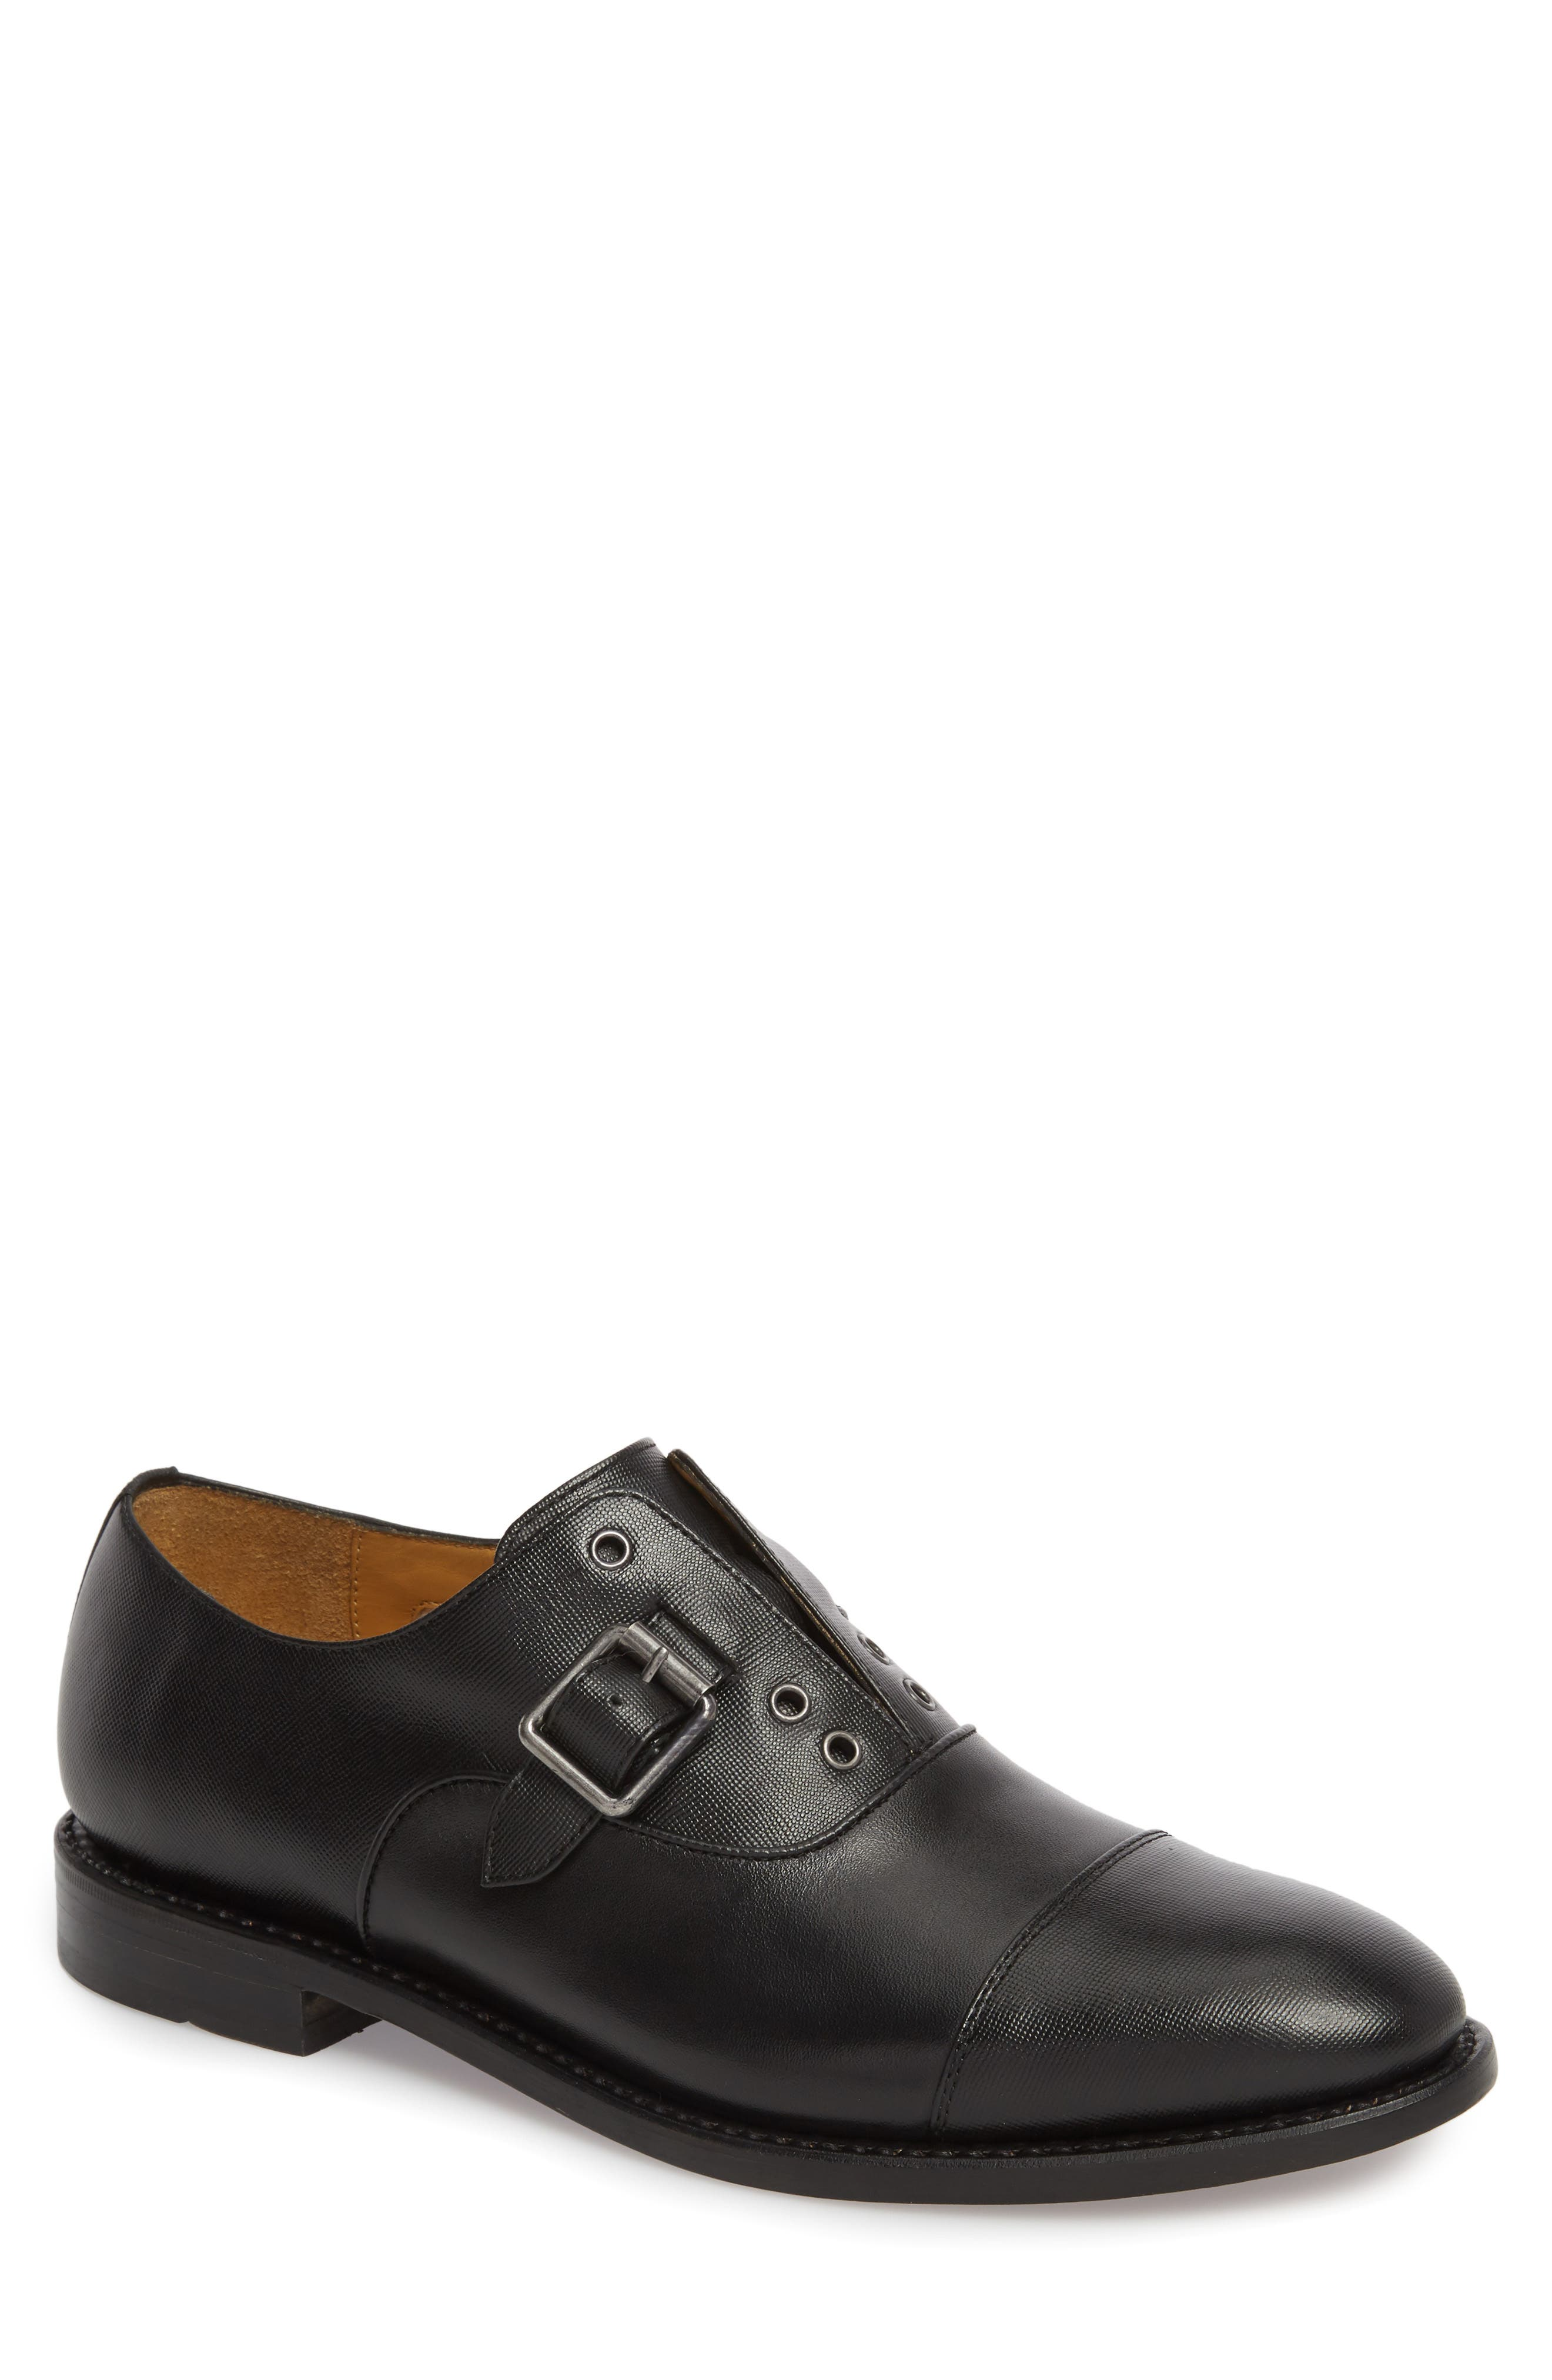 Brandon Cap Toe Oxford,                             Main thumbnail 1, color,                             001